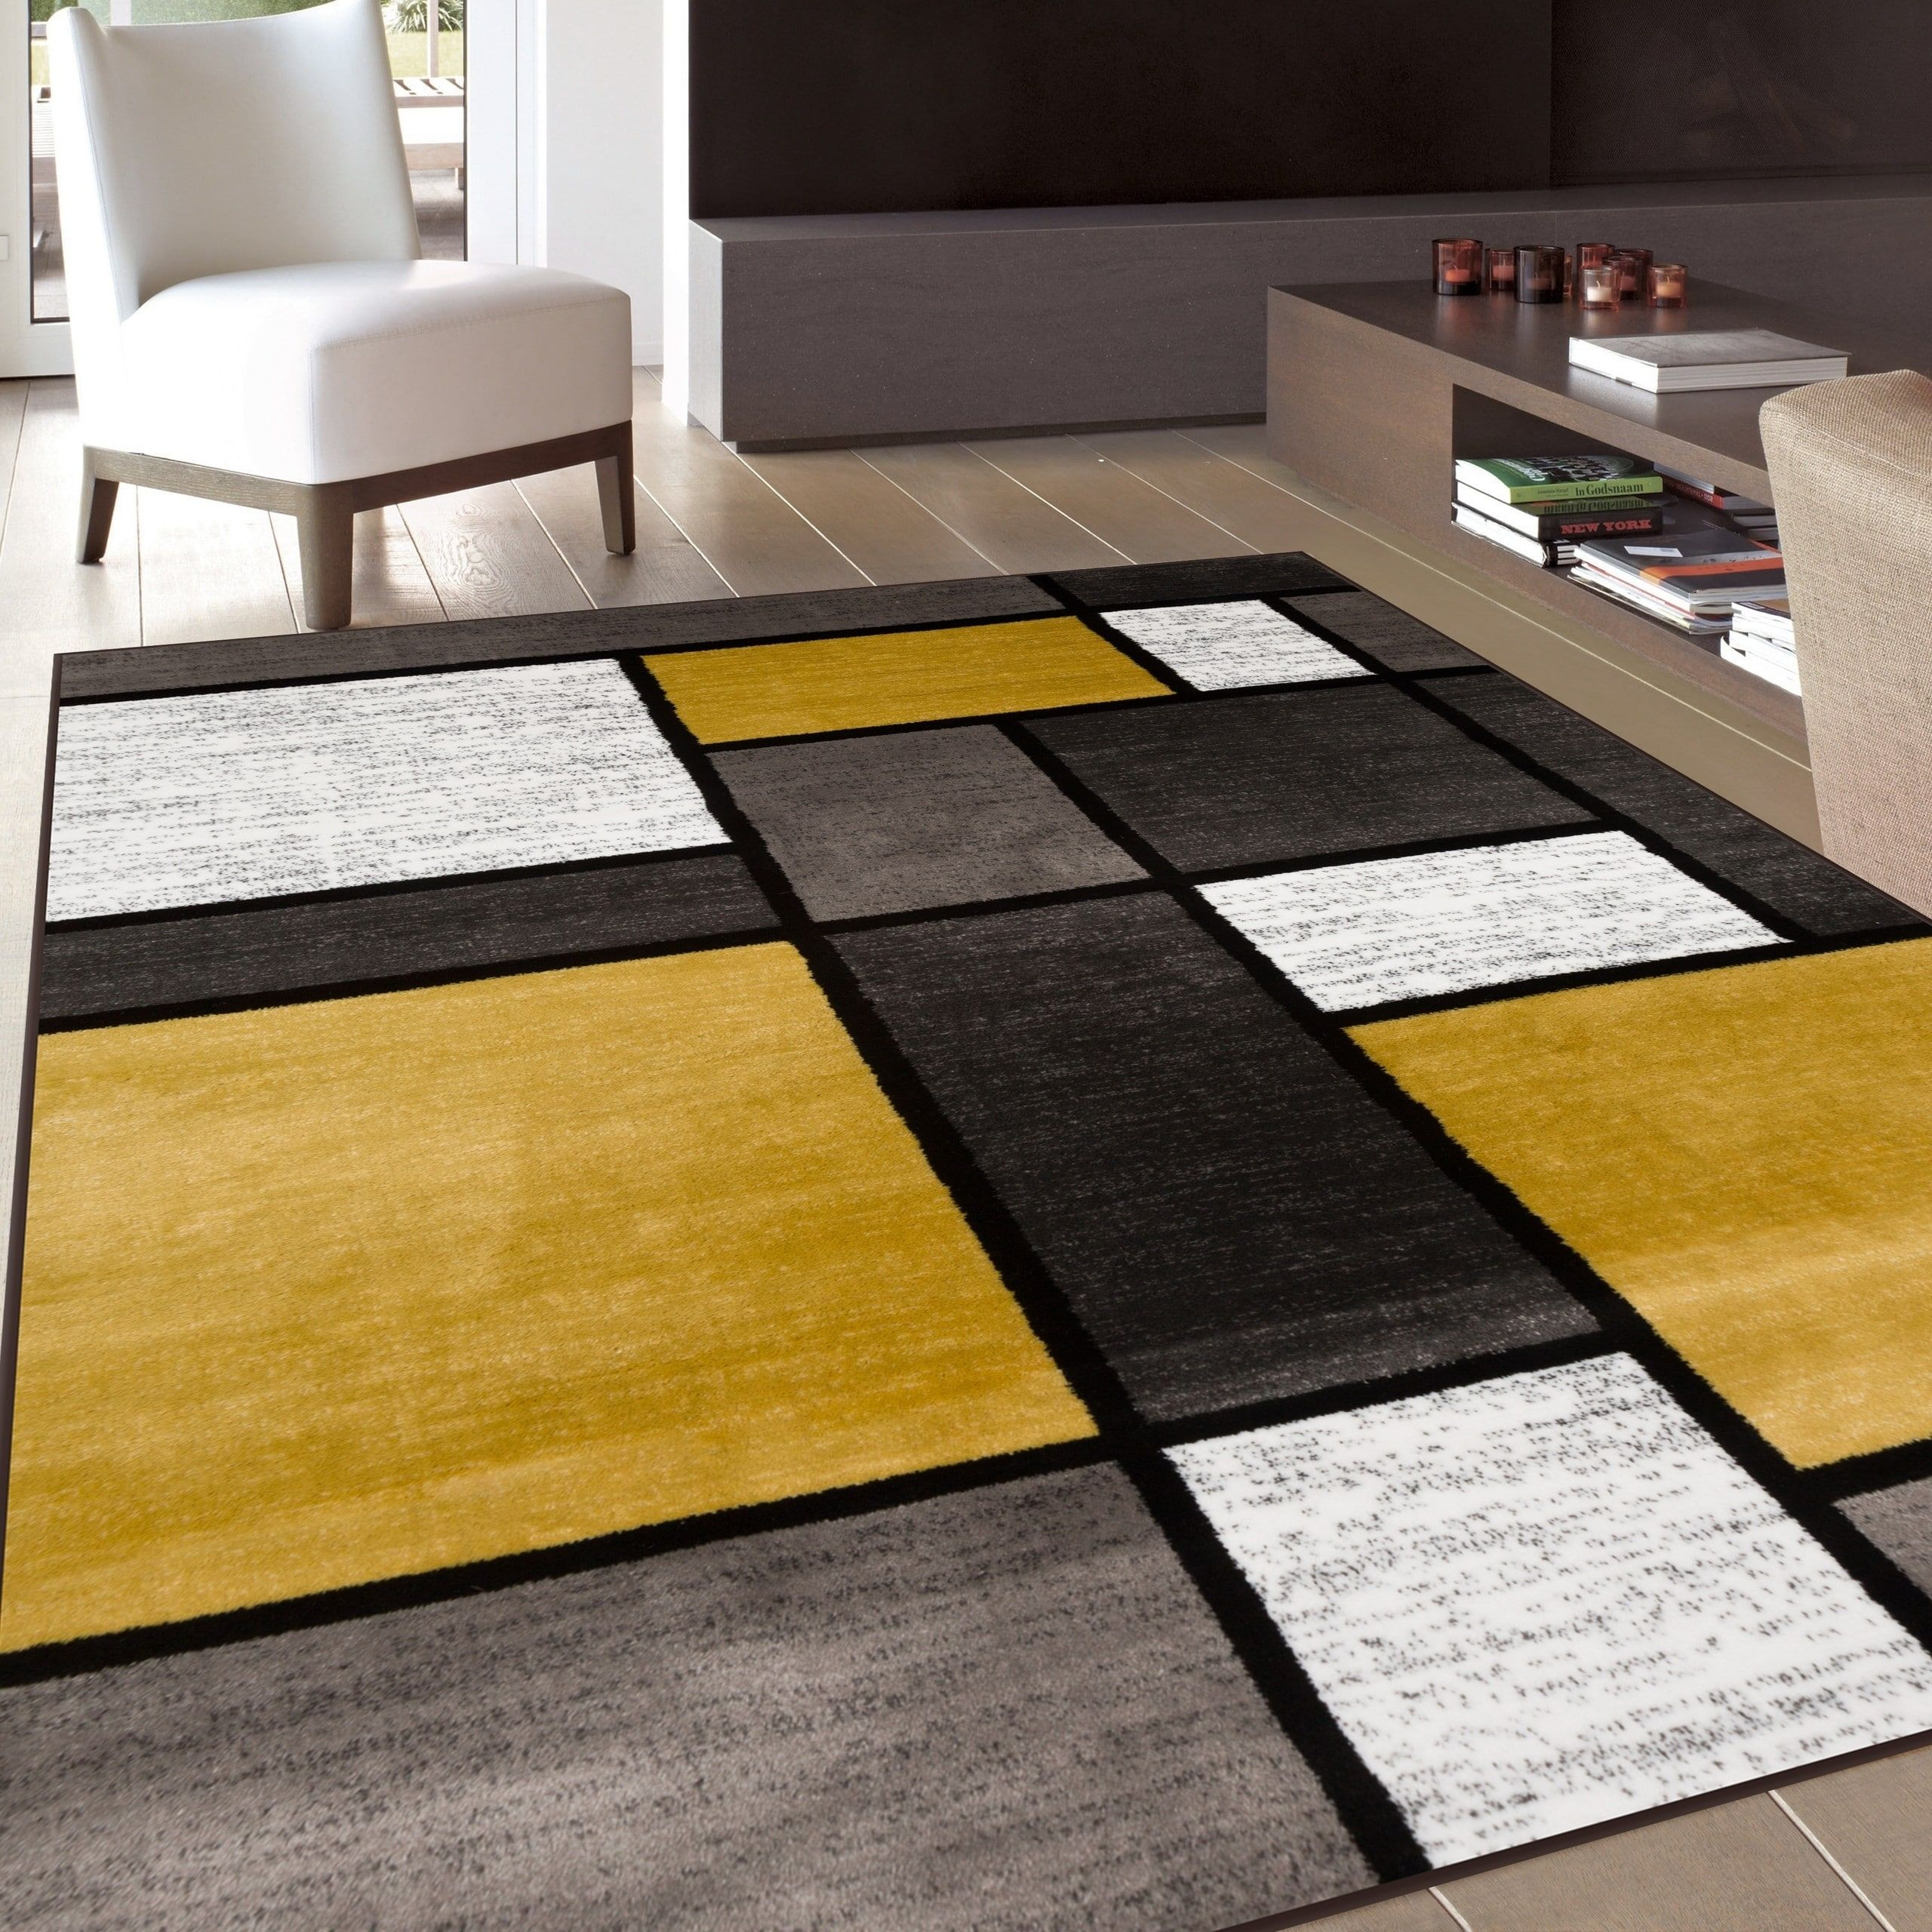 Osti contemporary modern boxes yellow area rug 9 x 12 9 x 12 size 9 x 12 polypropylene geometric